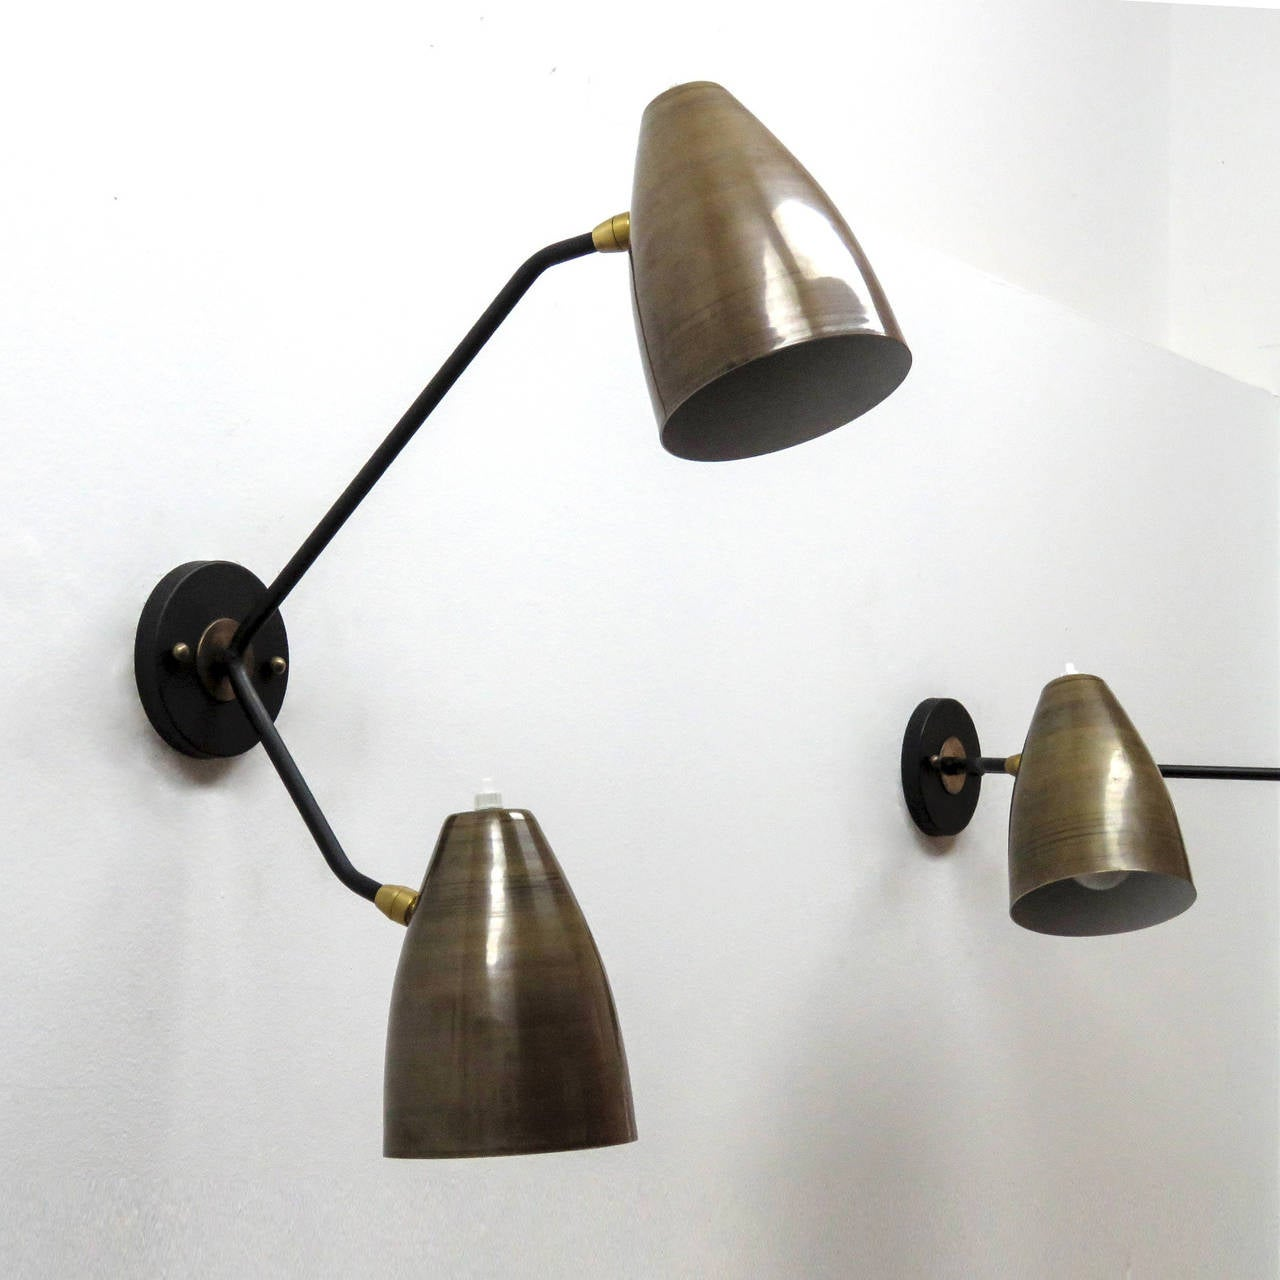 Wonderful asymmetrical double arm wall lights, two fully adjustable raw brass shades with white enameled interiors on black enameled arms, can be mounted vertically or horizontally, each shade with individual on and off switch.